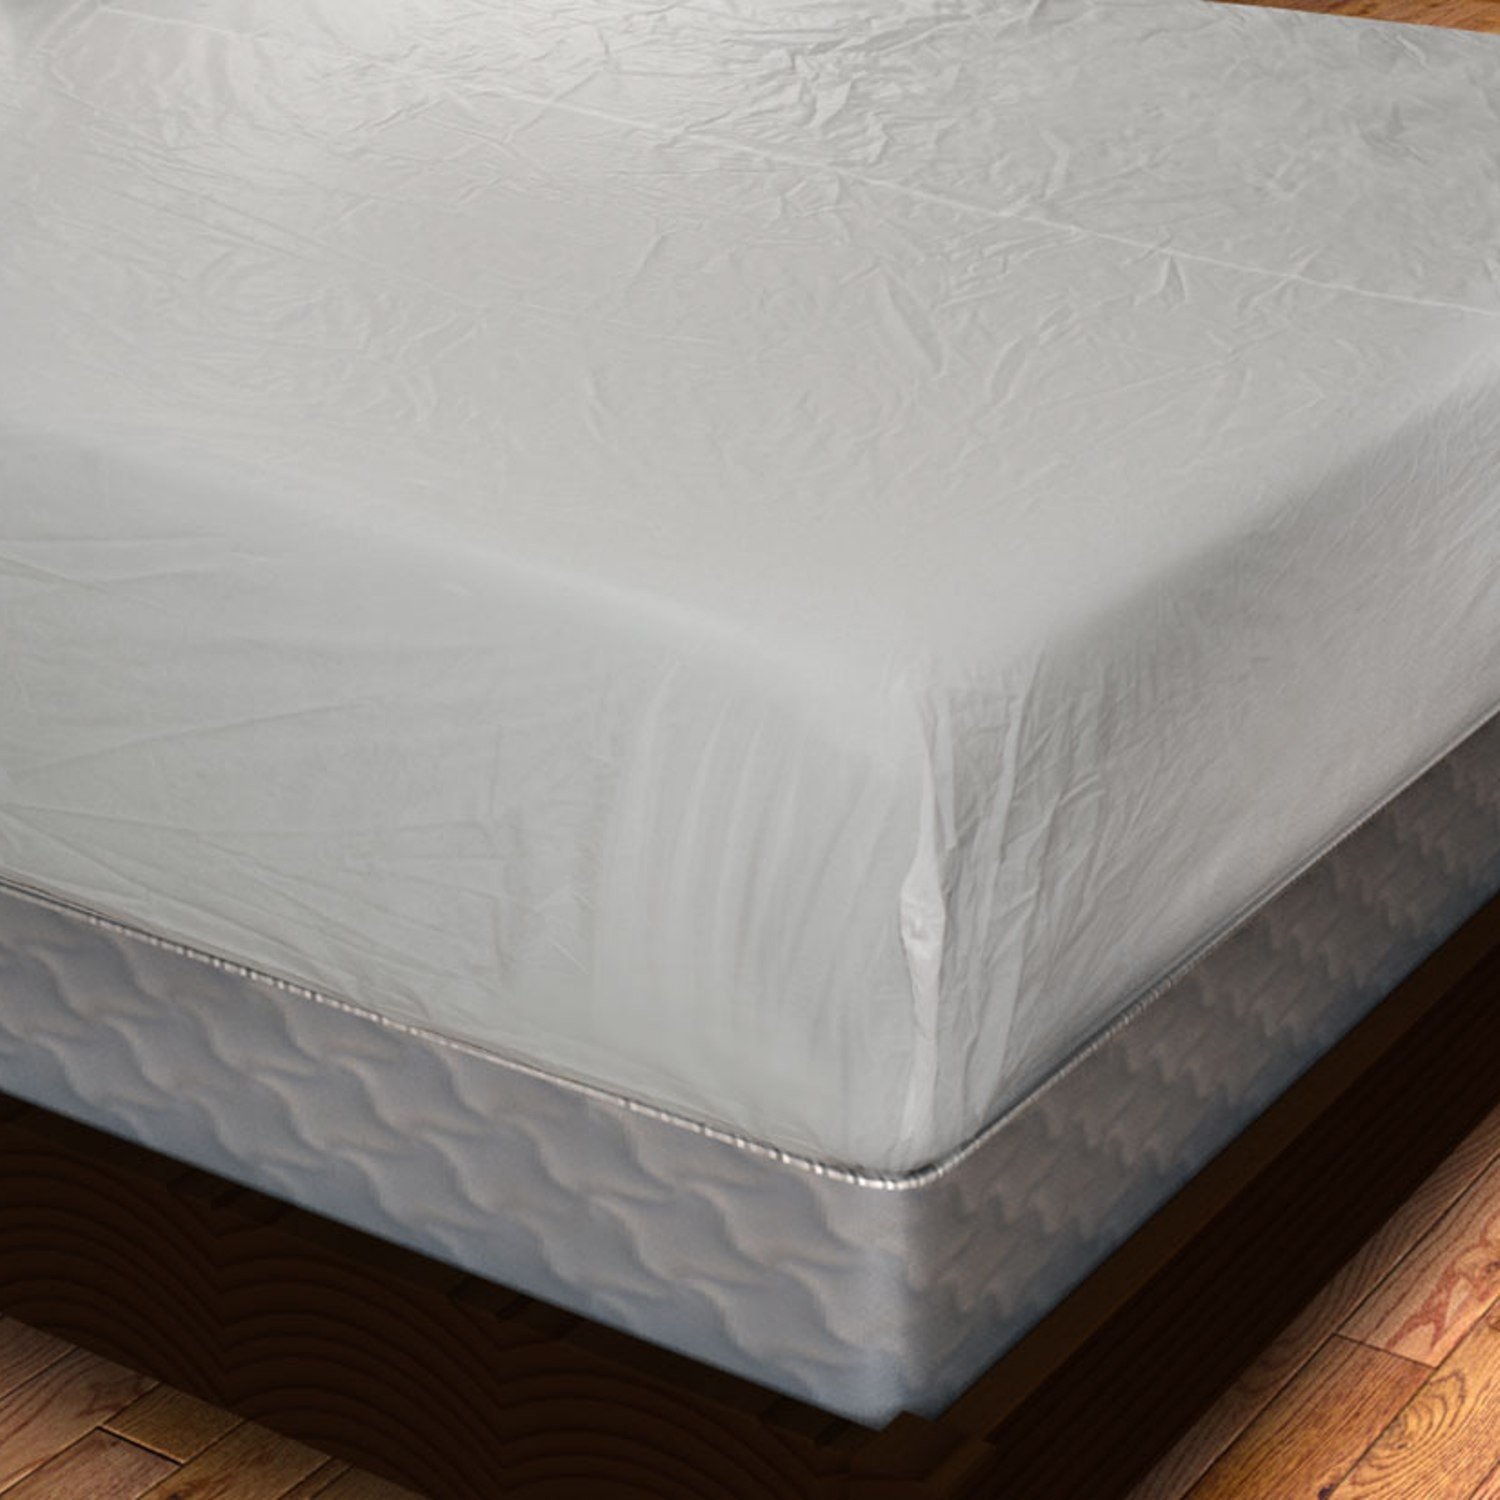 Plastic Mattress Plastic Mattress Cover Twin Xl Eternity Spring Bed In A